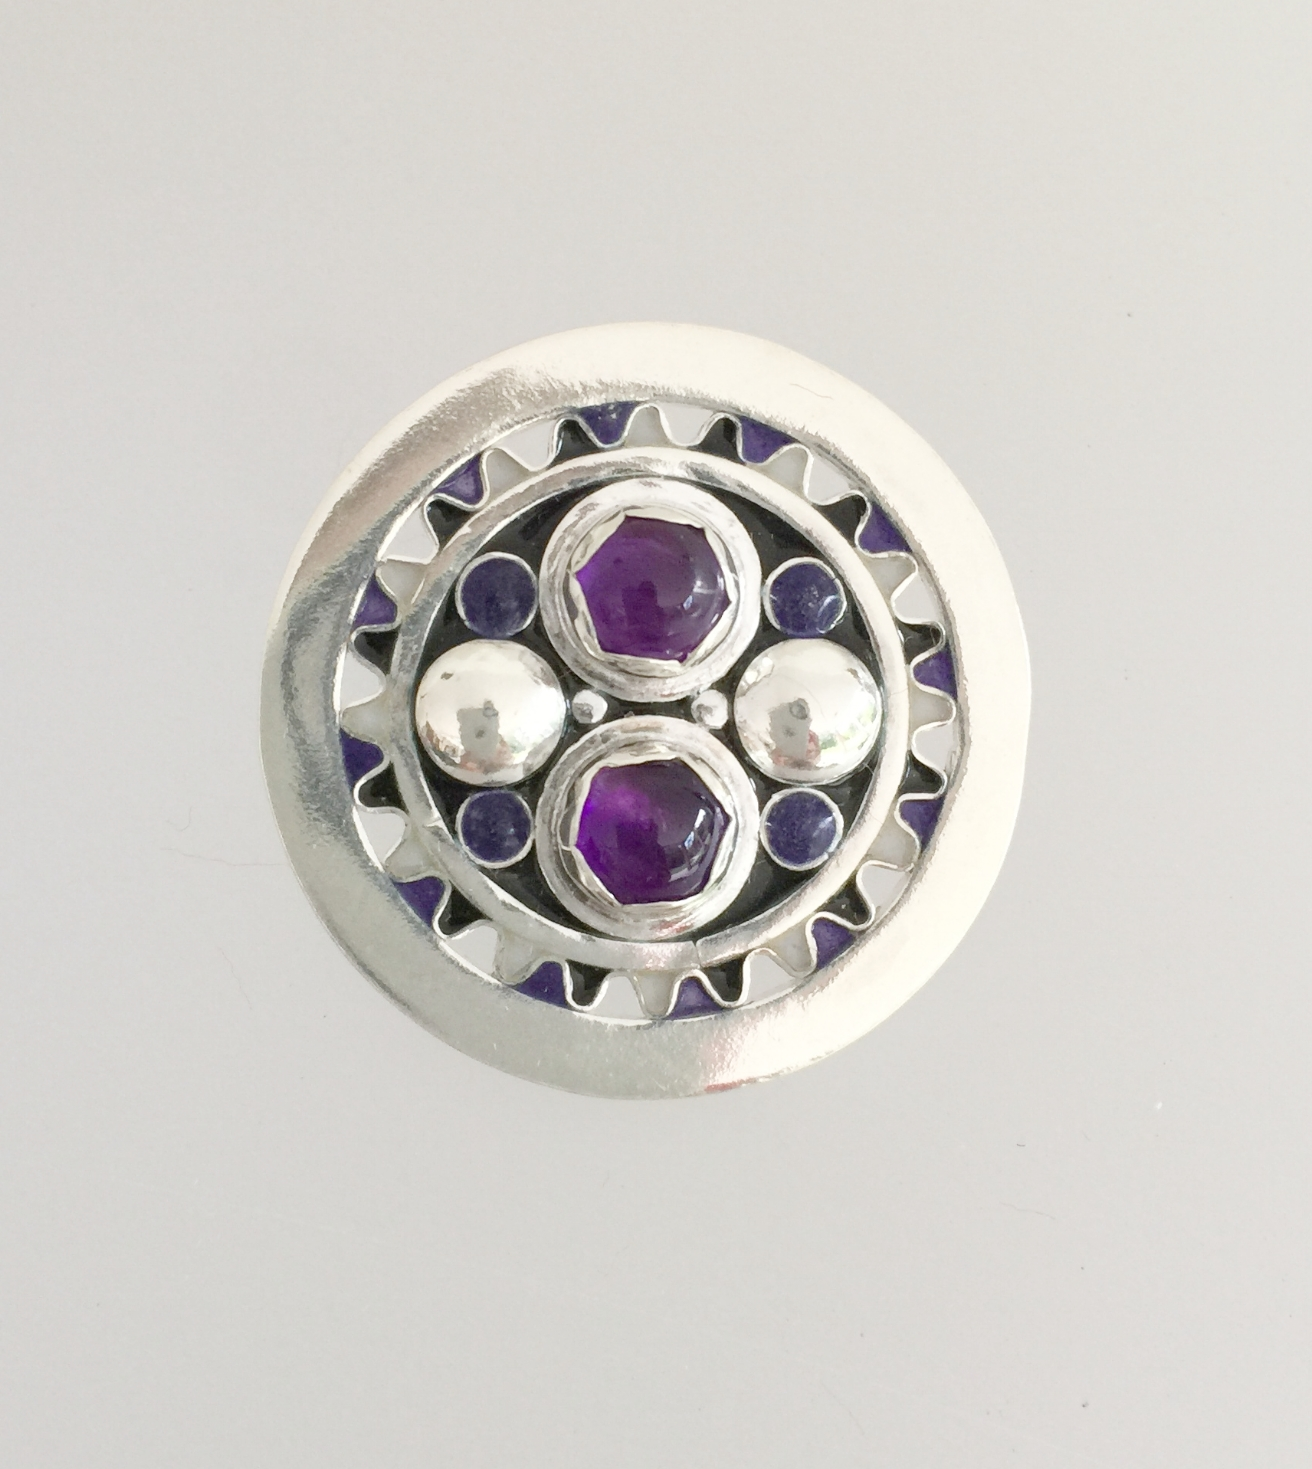 Round with Cabochon Enamel and Two Amethyst Cabochons